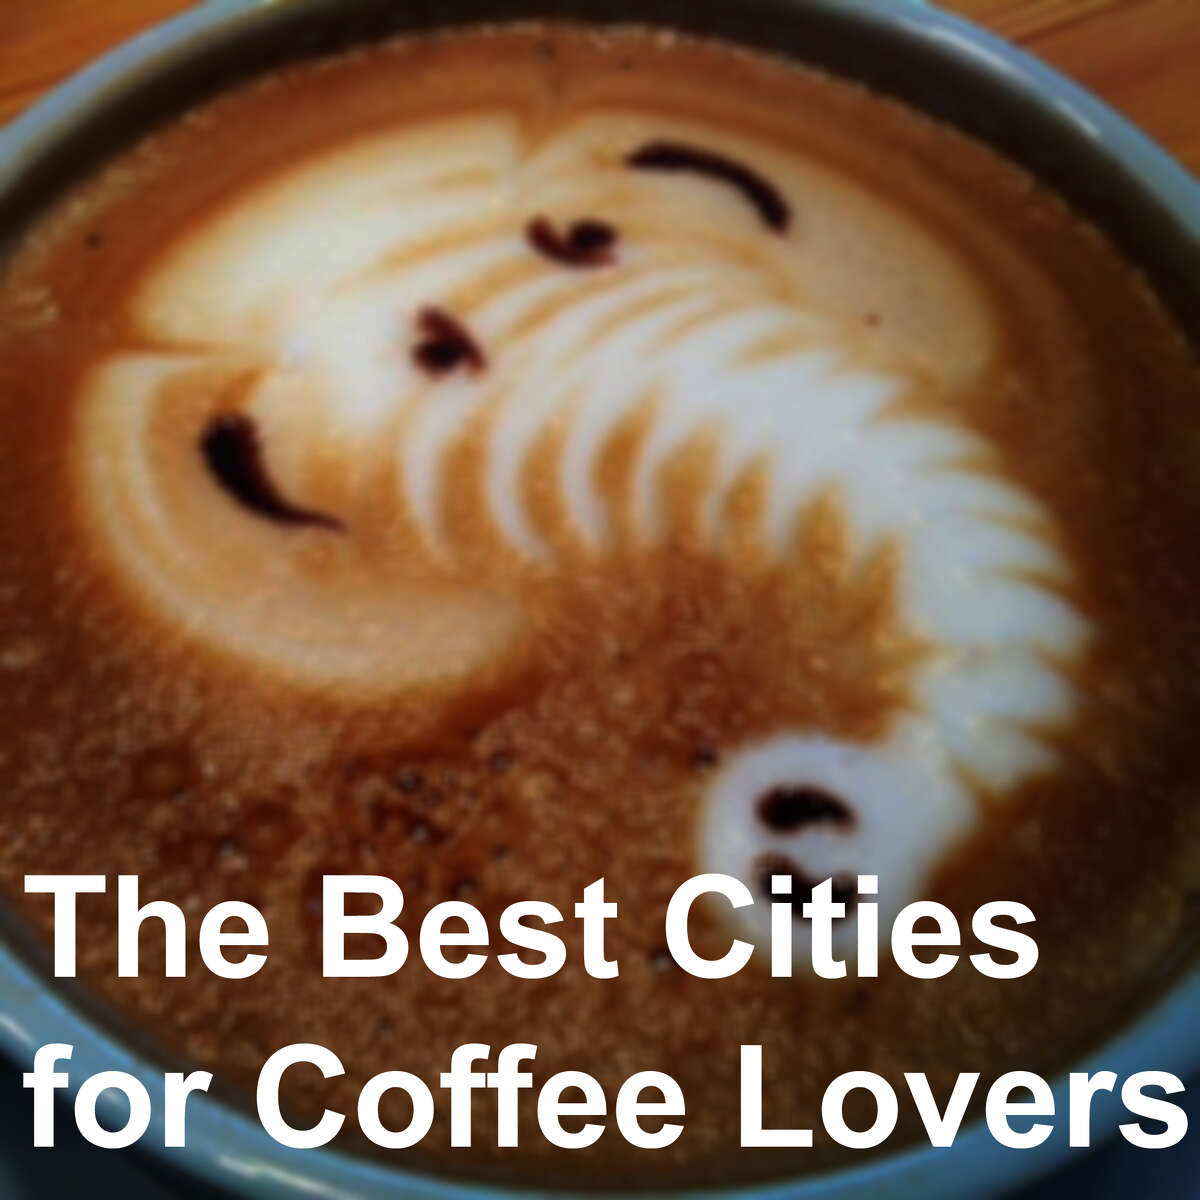 """Seattle isn't the """"best"""" city for coffee, but it did crack the top 10. In fact, three Washington cities made it into the top 10, and one even beat the Emerald City. See where the cities ranked in the top 10 best cities for coffee -- and where some other Washington cities landed in the top 50."""